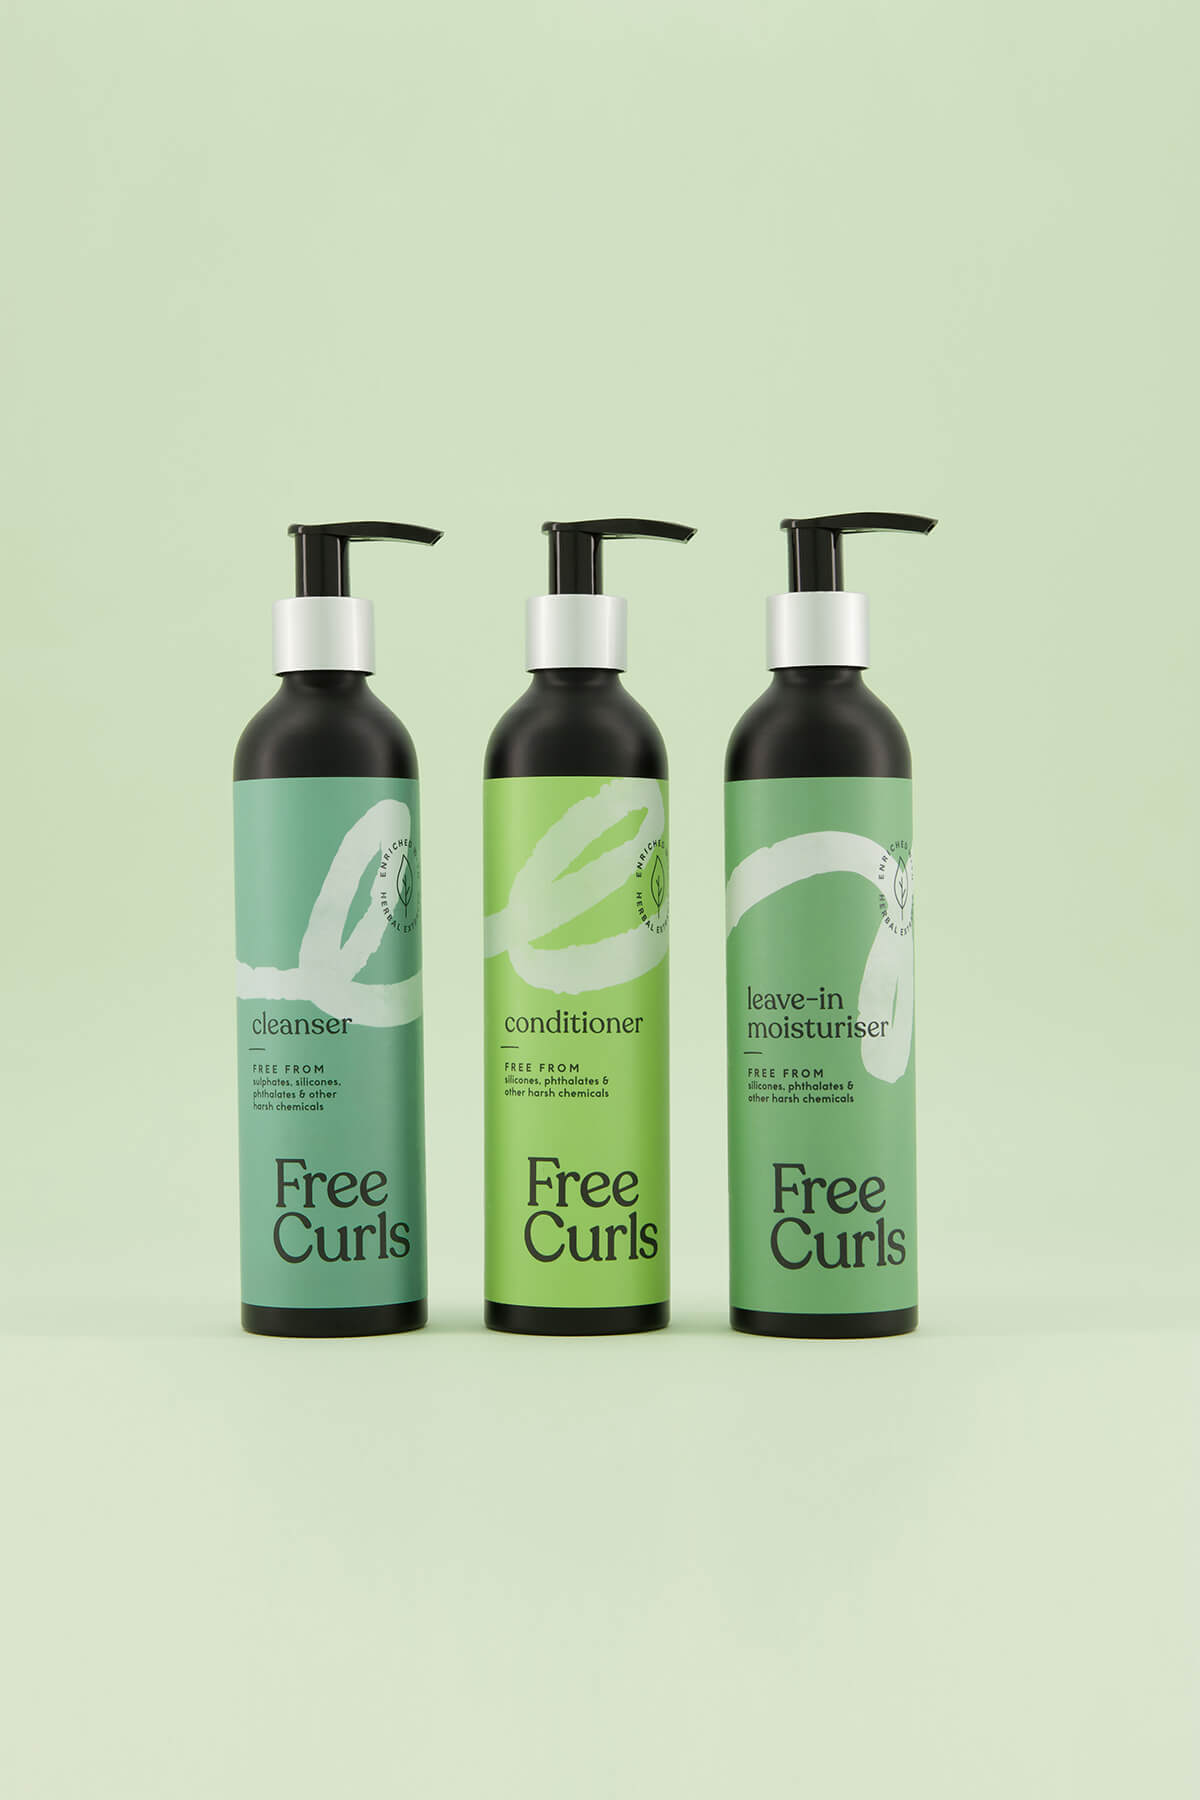 Free Curls haircare bottles product group photography in studio